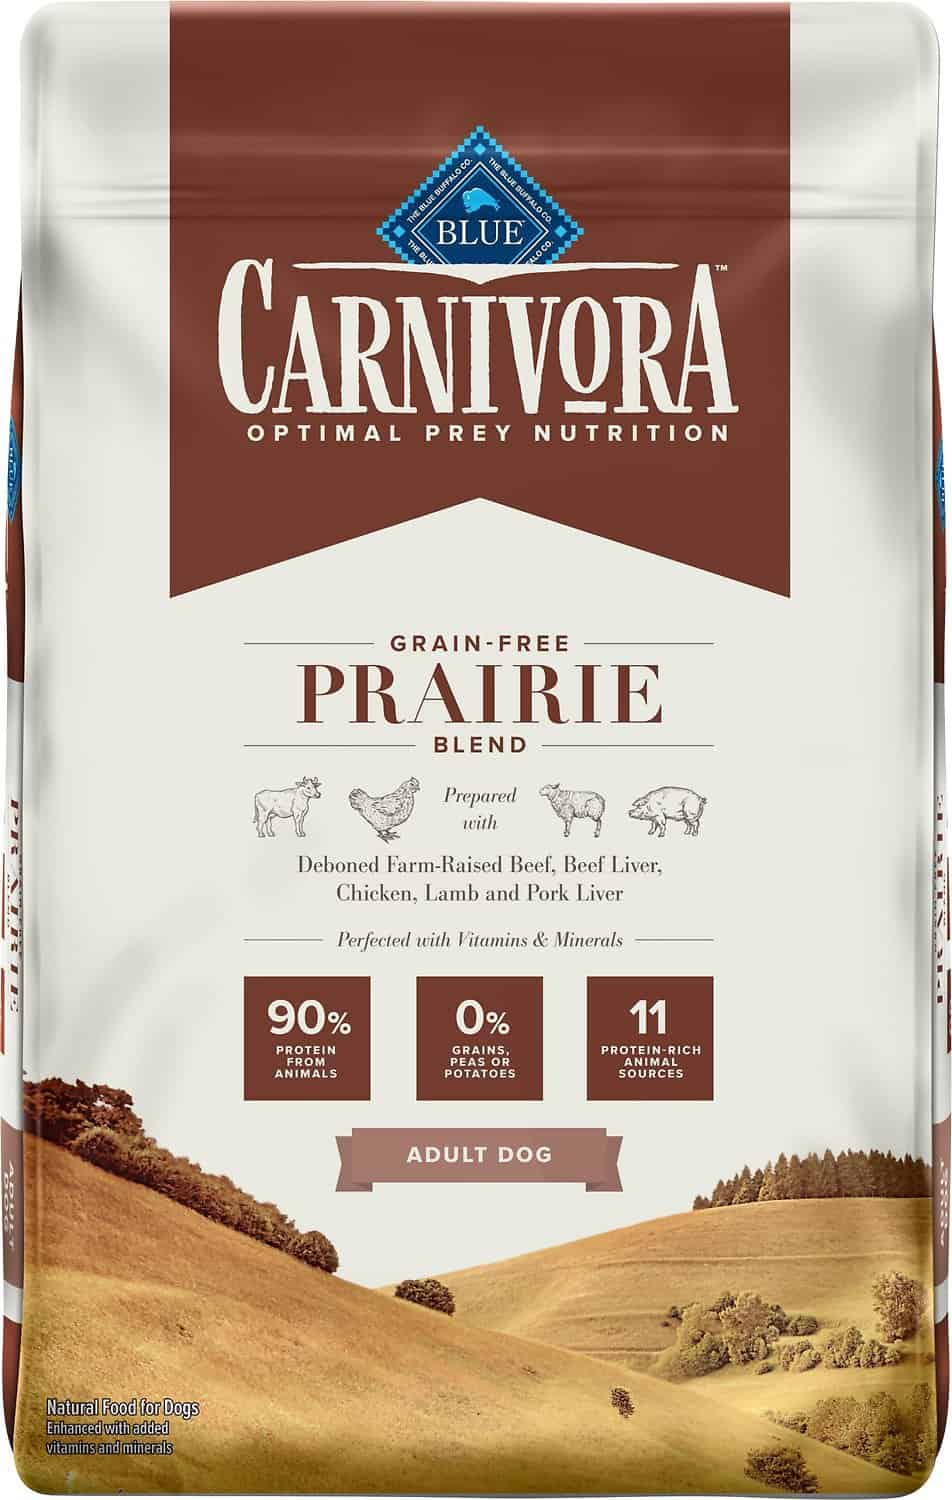 Blue Buffalo Carnivora Review 2021: The Pea & Potato Free Dog Food Line 13